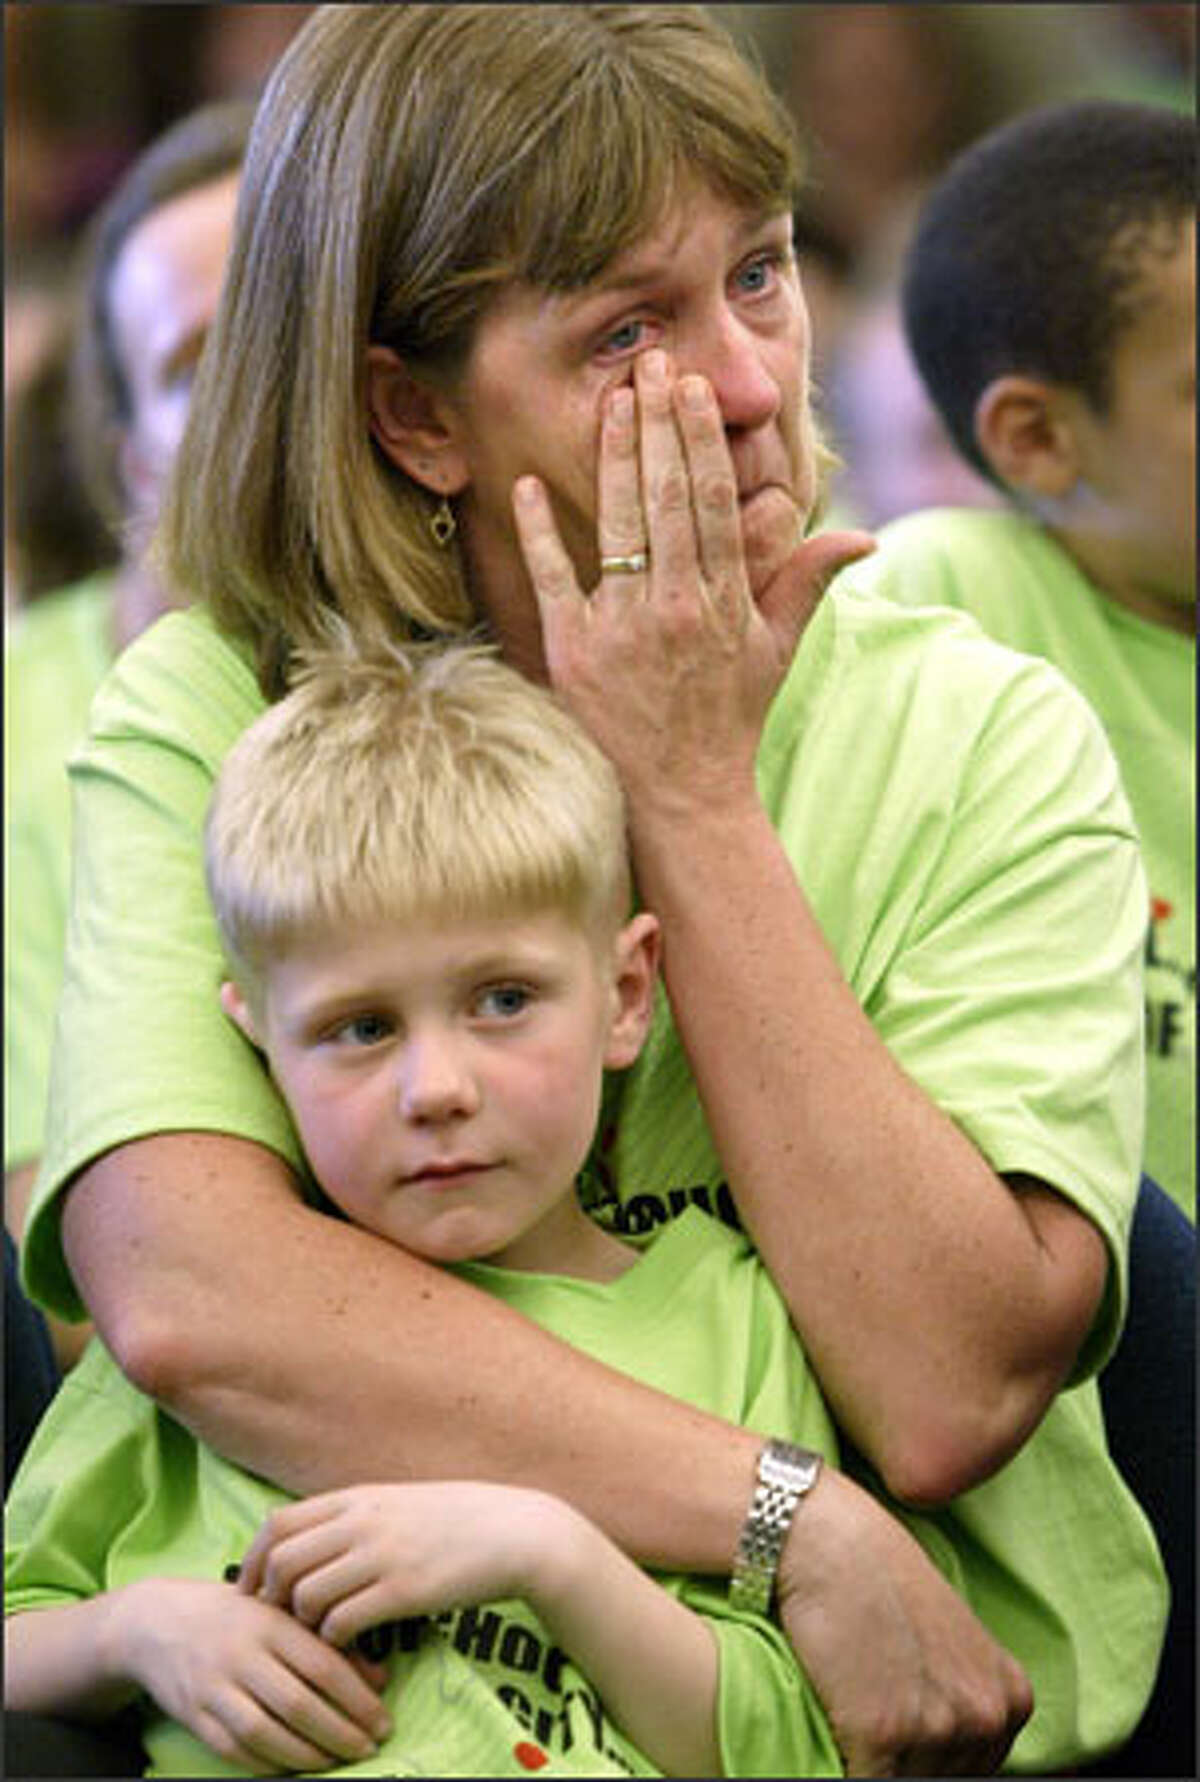 Lynne Butz tears up while holding onto her son, Simon, 7, at a Seattle School Board meeting. More than 200 parents and students turned out to protest the district's plan to close 10 schools.